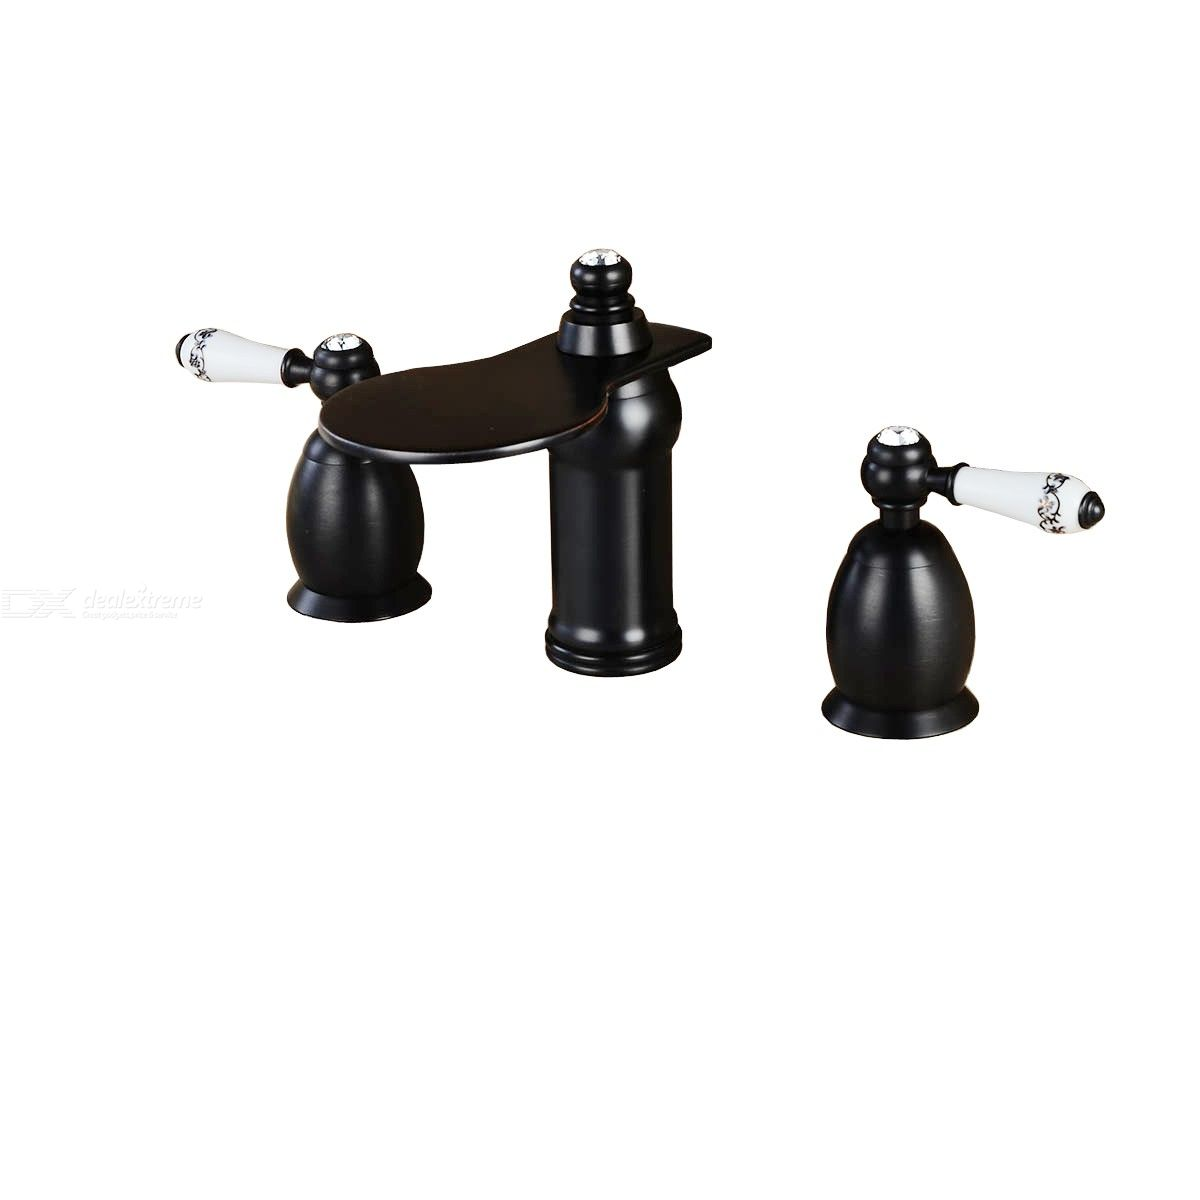 Special Price Bathroom Sink Faucet - Widespread Oil-rubbed Bronze Two Handles Three Holes Bath Taps / Brass